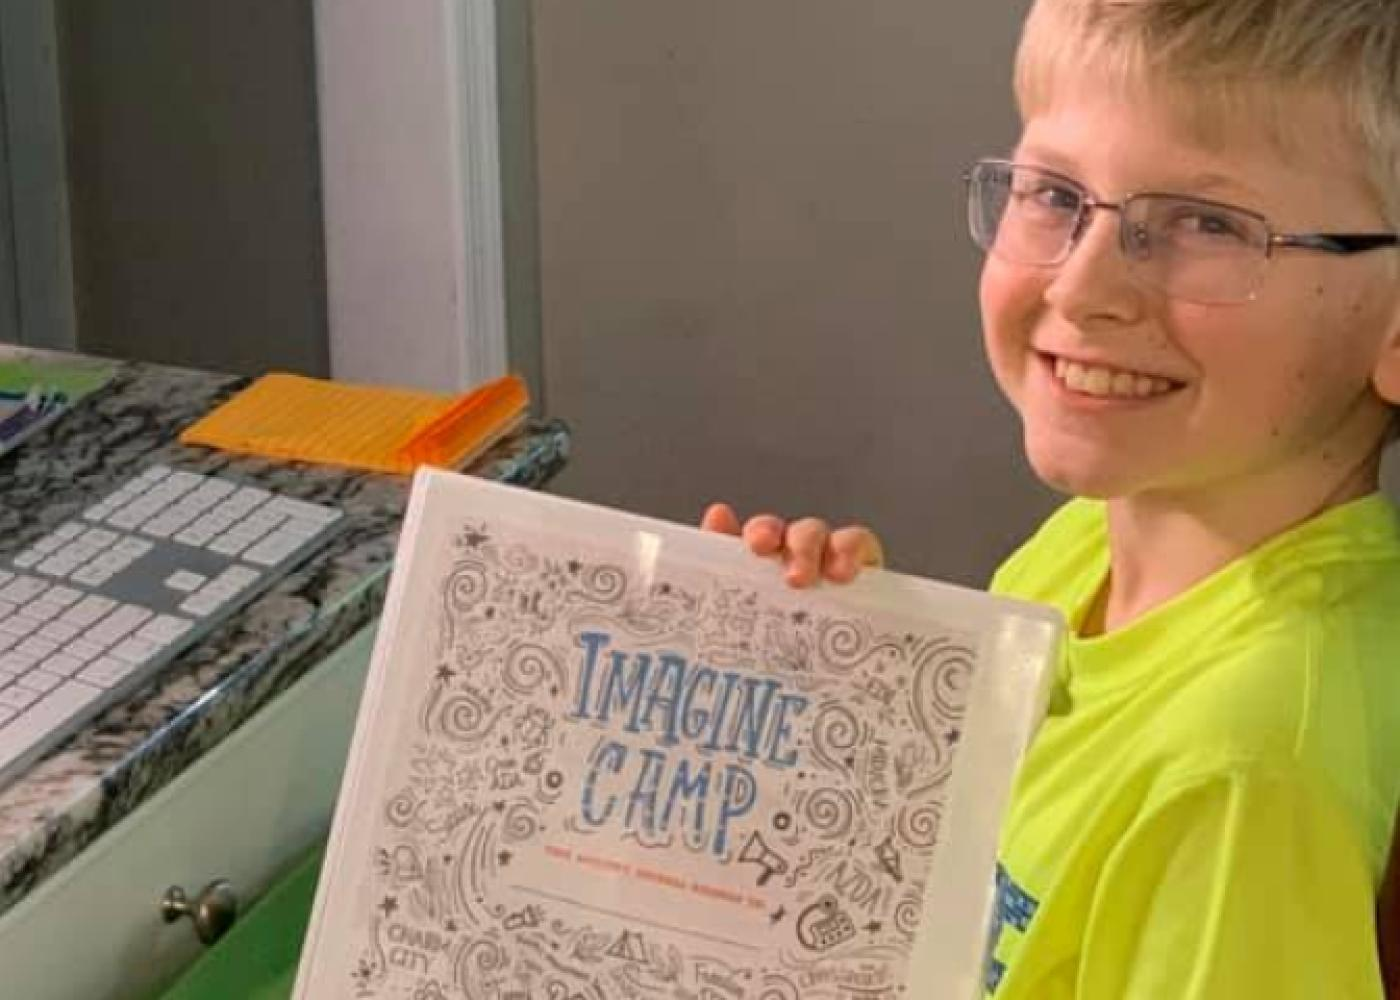 Blond boy with glasses in yellow shirt holding imagine camp piece of paper